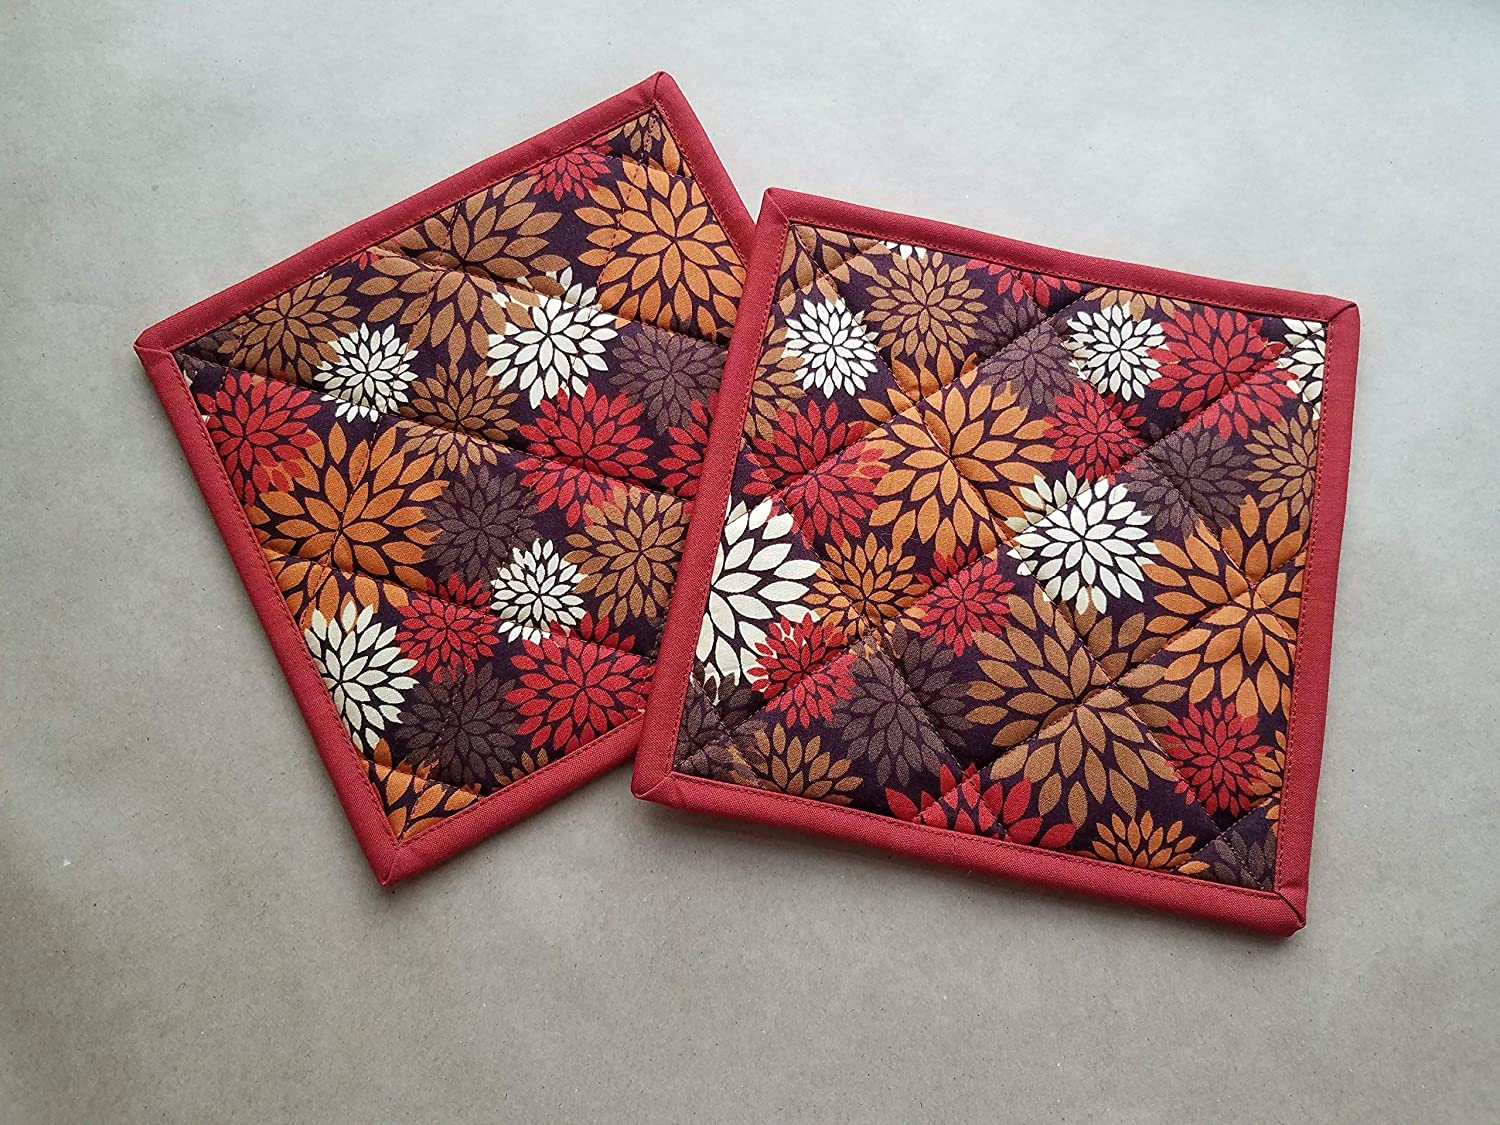 Earth Tone Modern Floral Potholders Set of 2, Fall Kitchen Linens, Floral Home Decor, Autumn Hot Pads, Flower Insulated trivets, Modern Print Kitchen Decor, Earth Tone Home Decor, Gifts Under 20